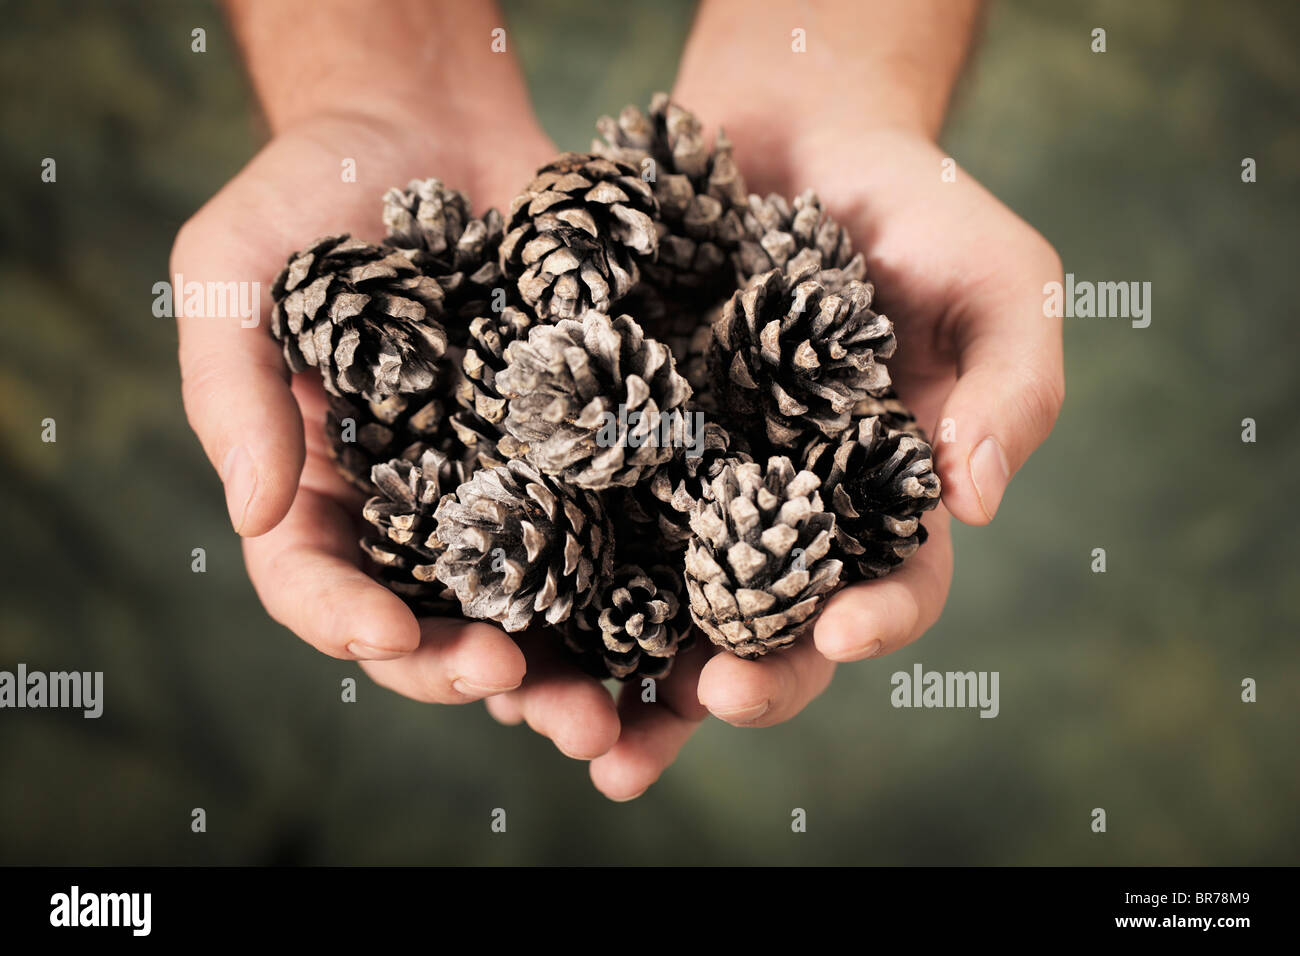 Man holding old pine cones in his hands - Stock Image